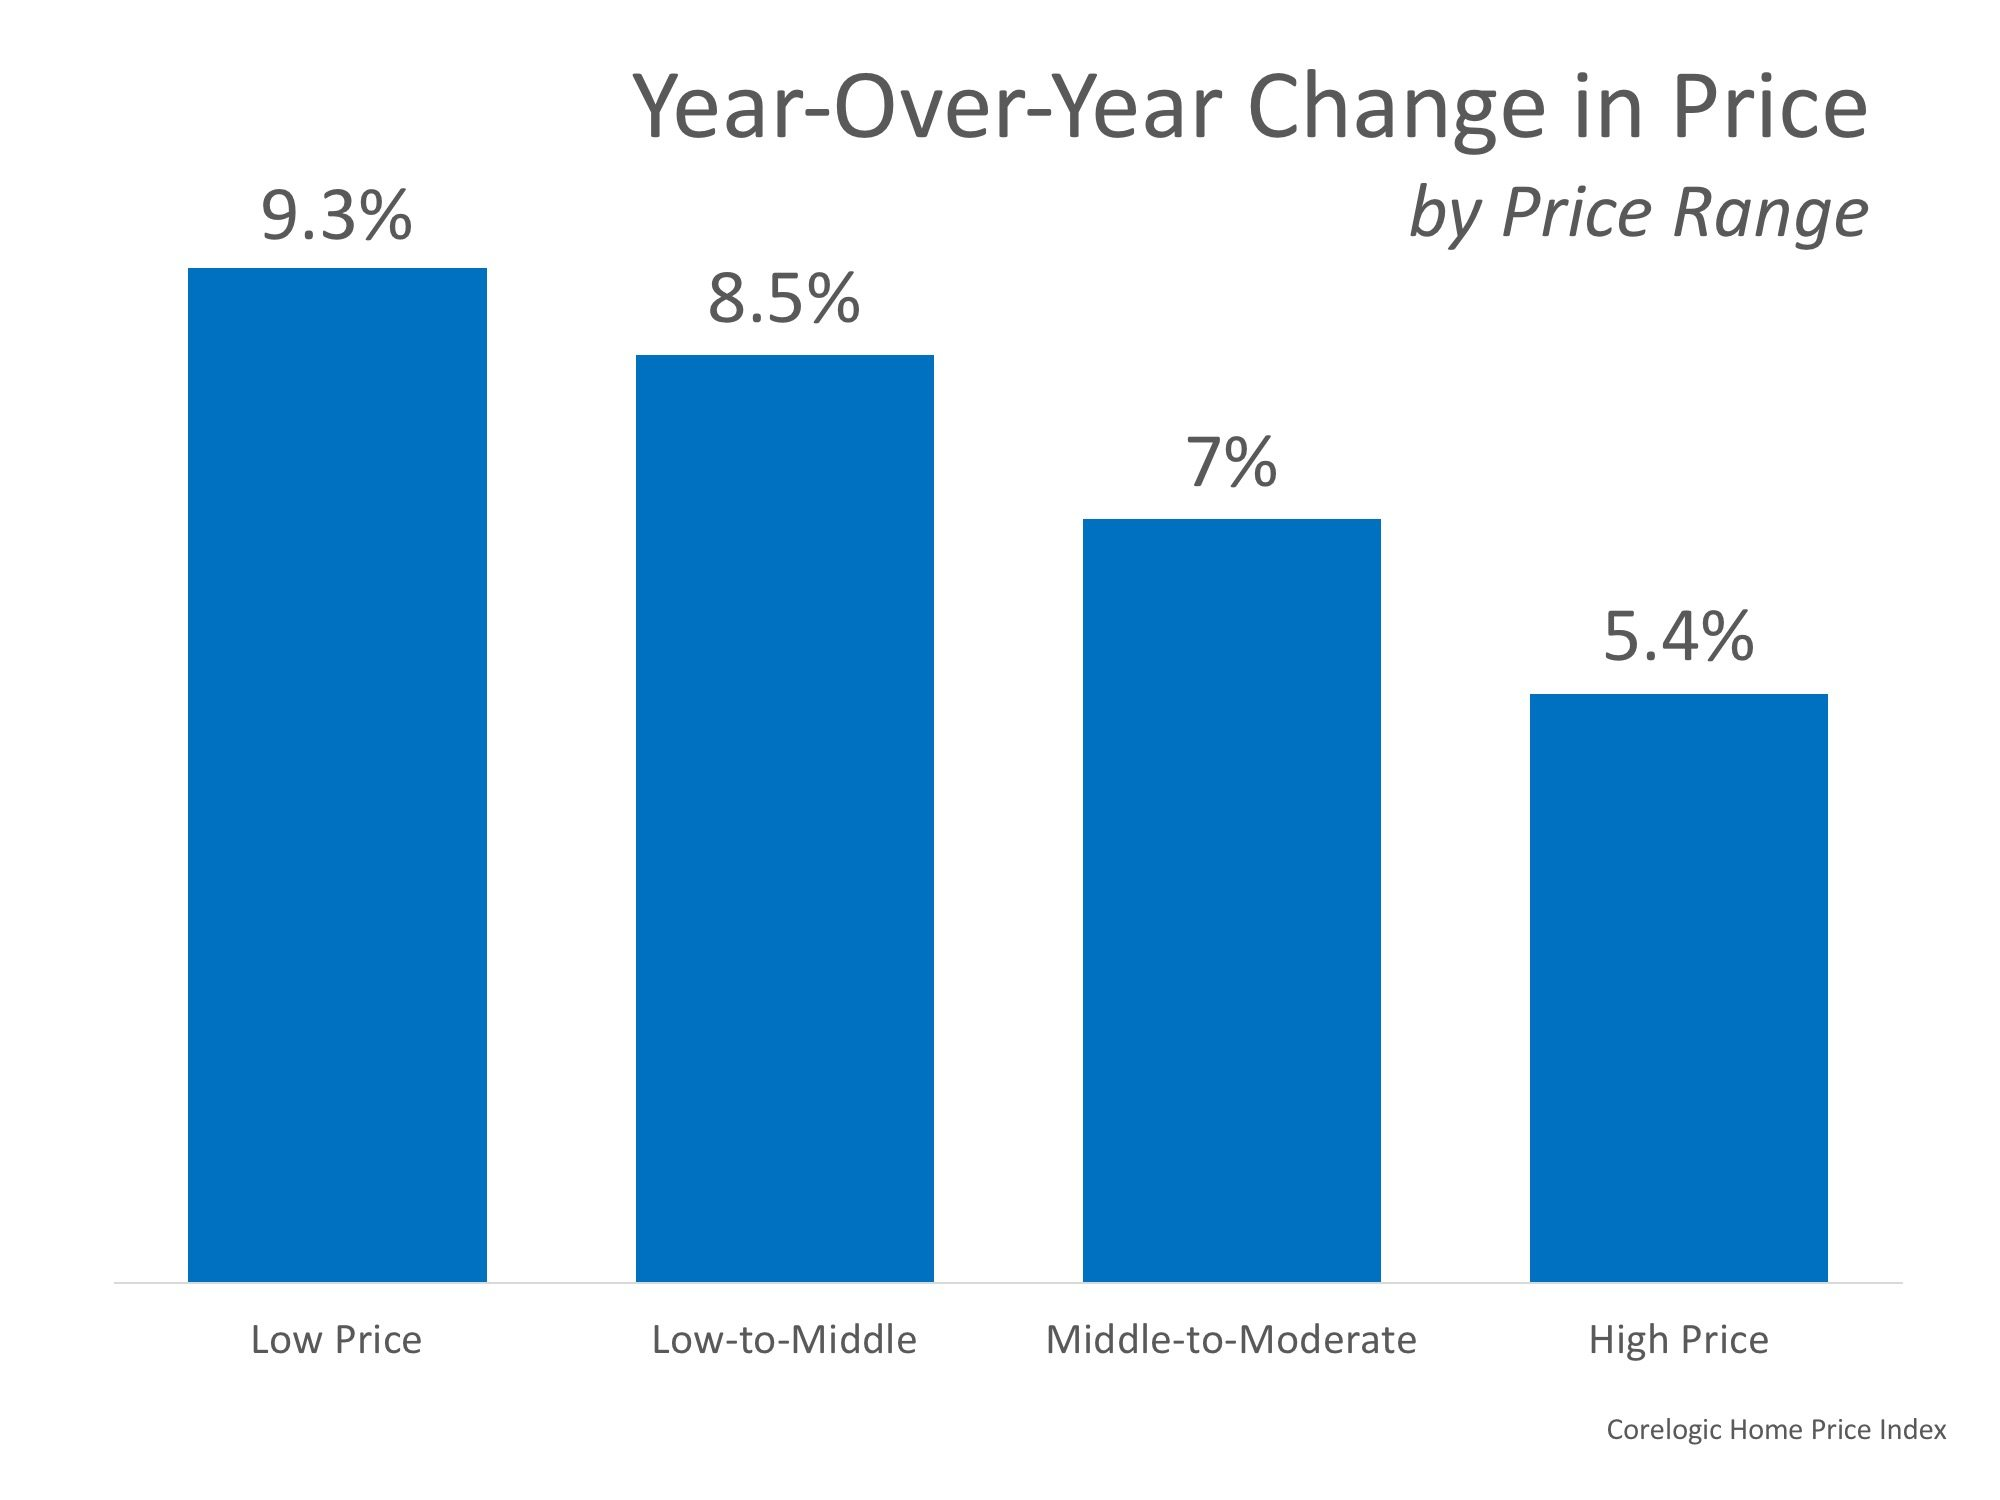 How Much More Equity In Your Home Over the Last Year?